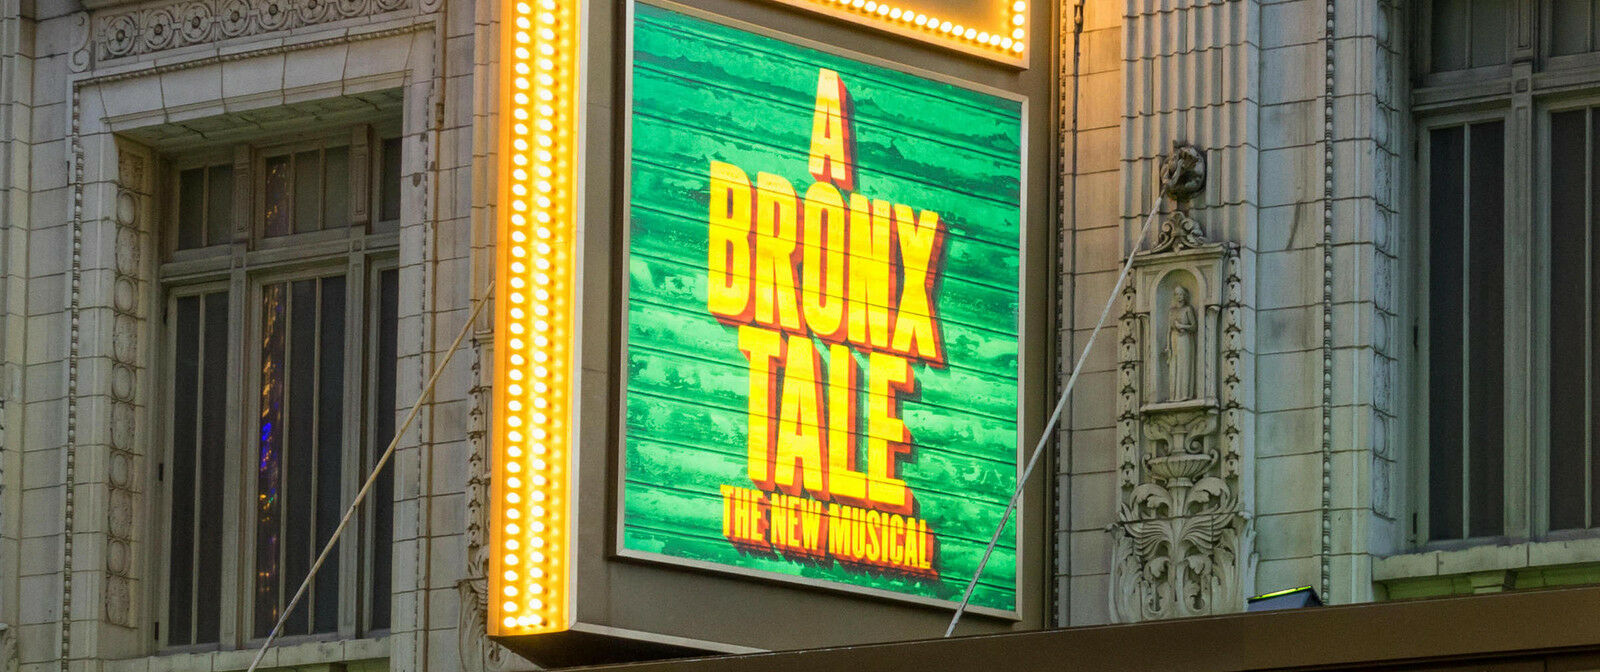 A Bronx Tale New York | New York, NY | Longacre Theatre | December 9, 2017